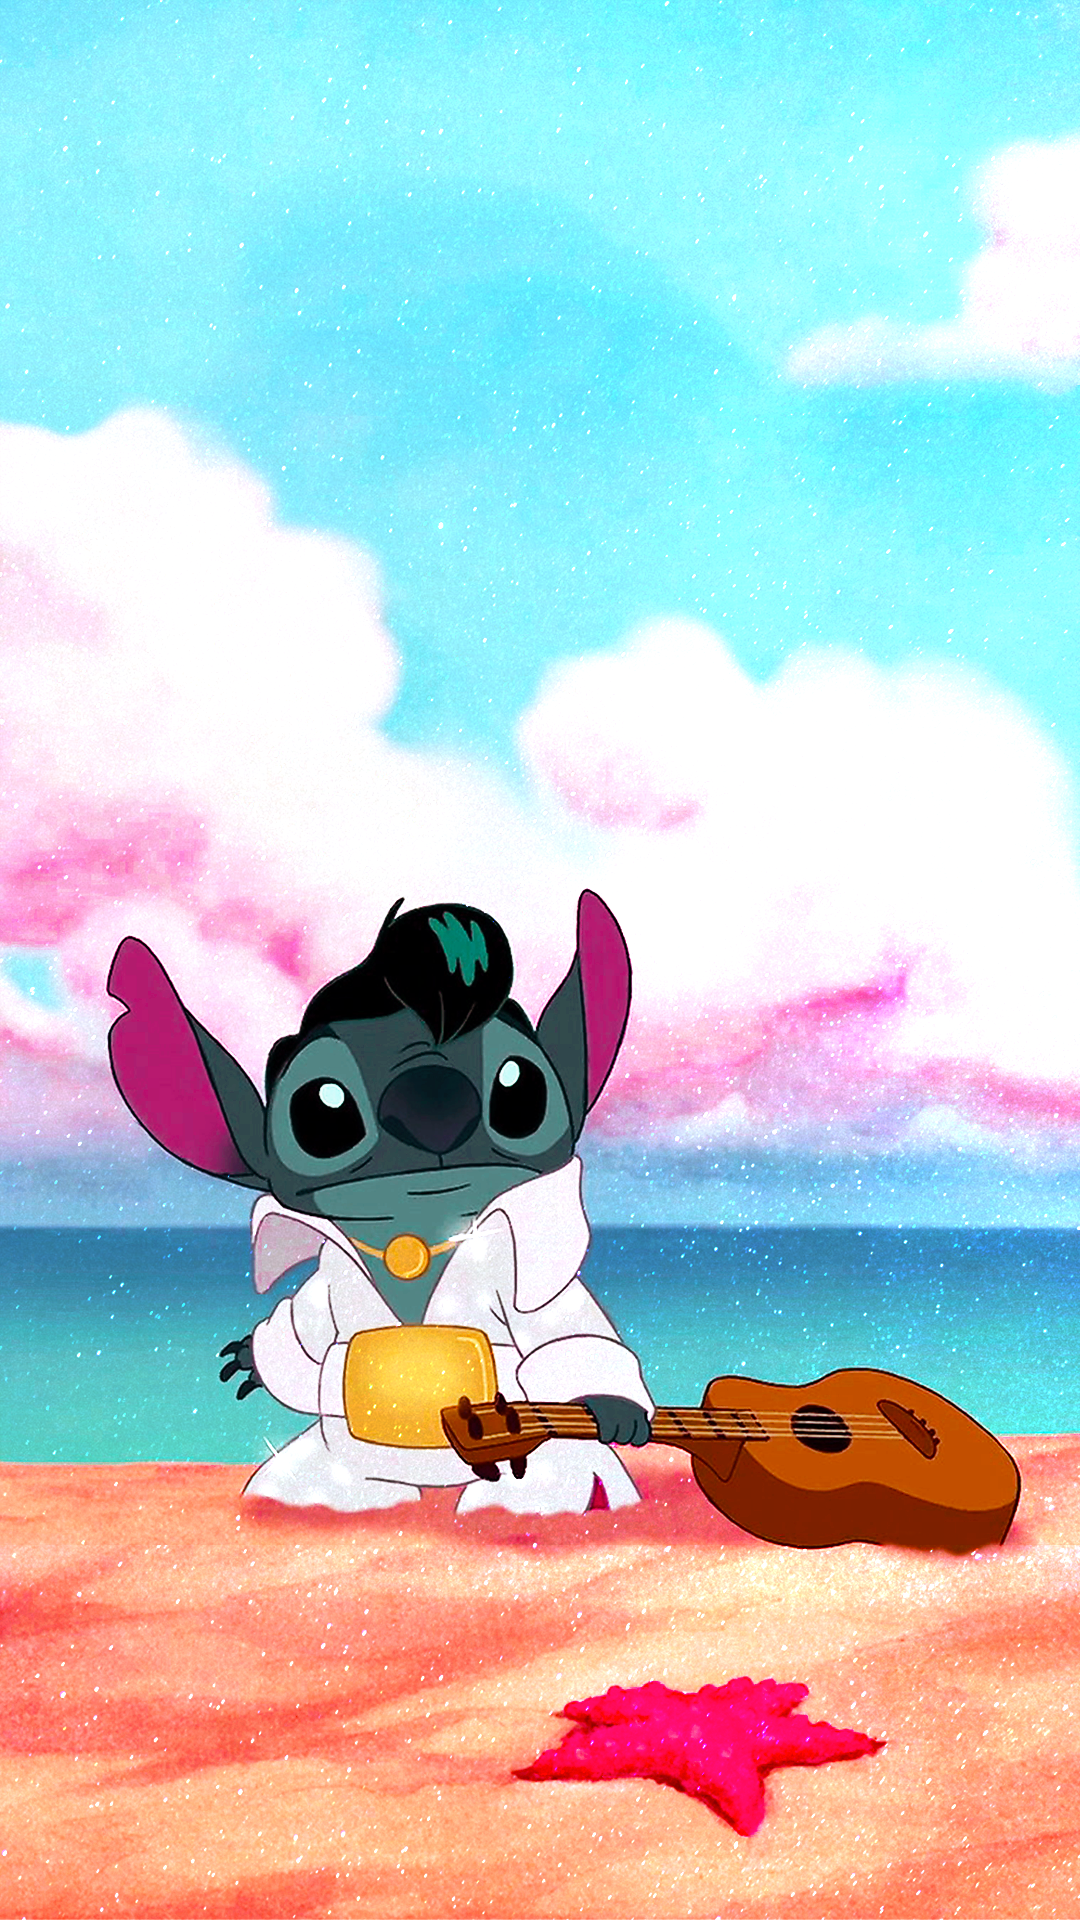 Lilo & Stitch background you can find the rest on my